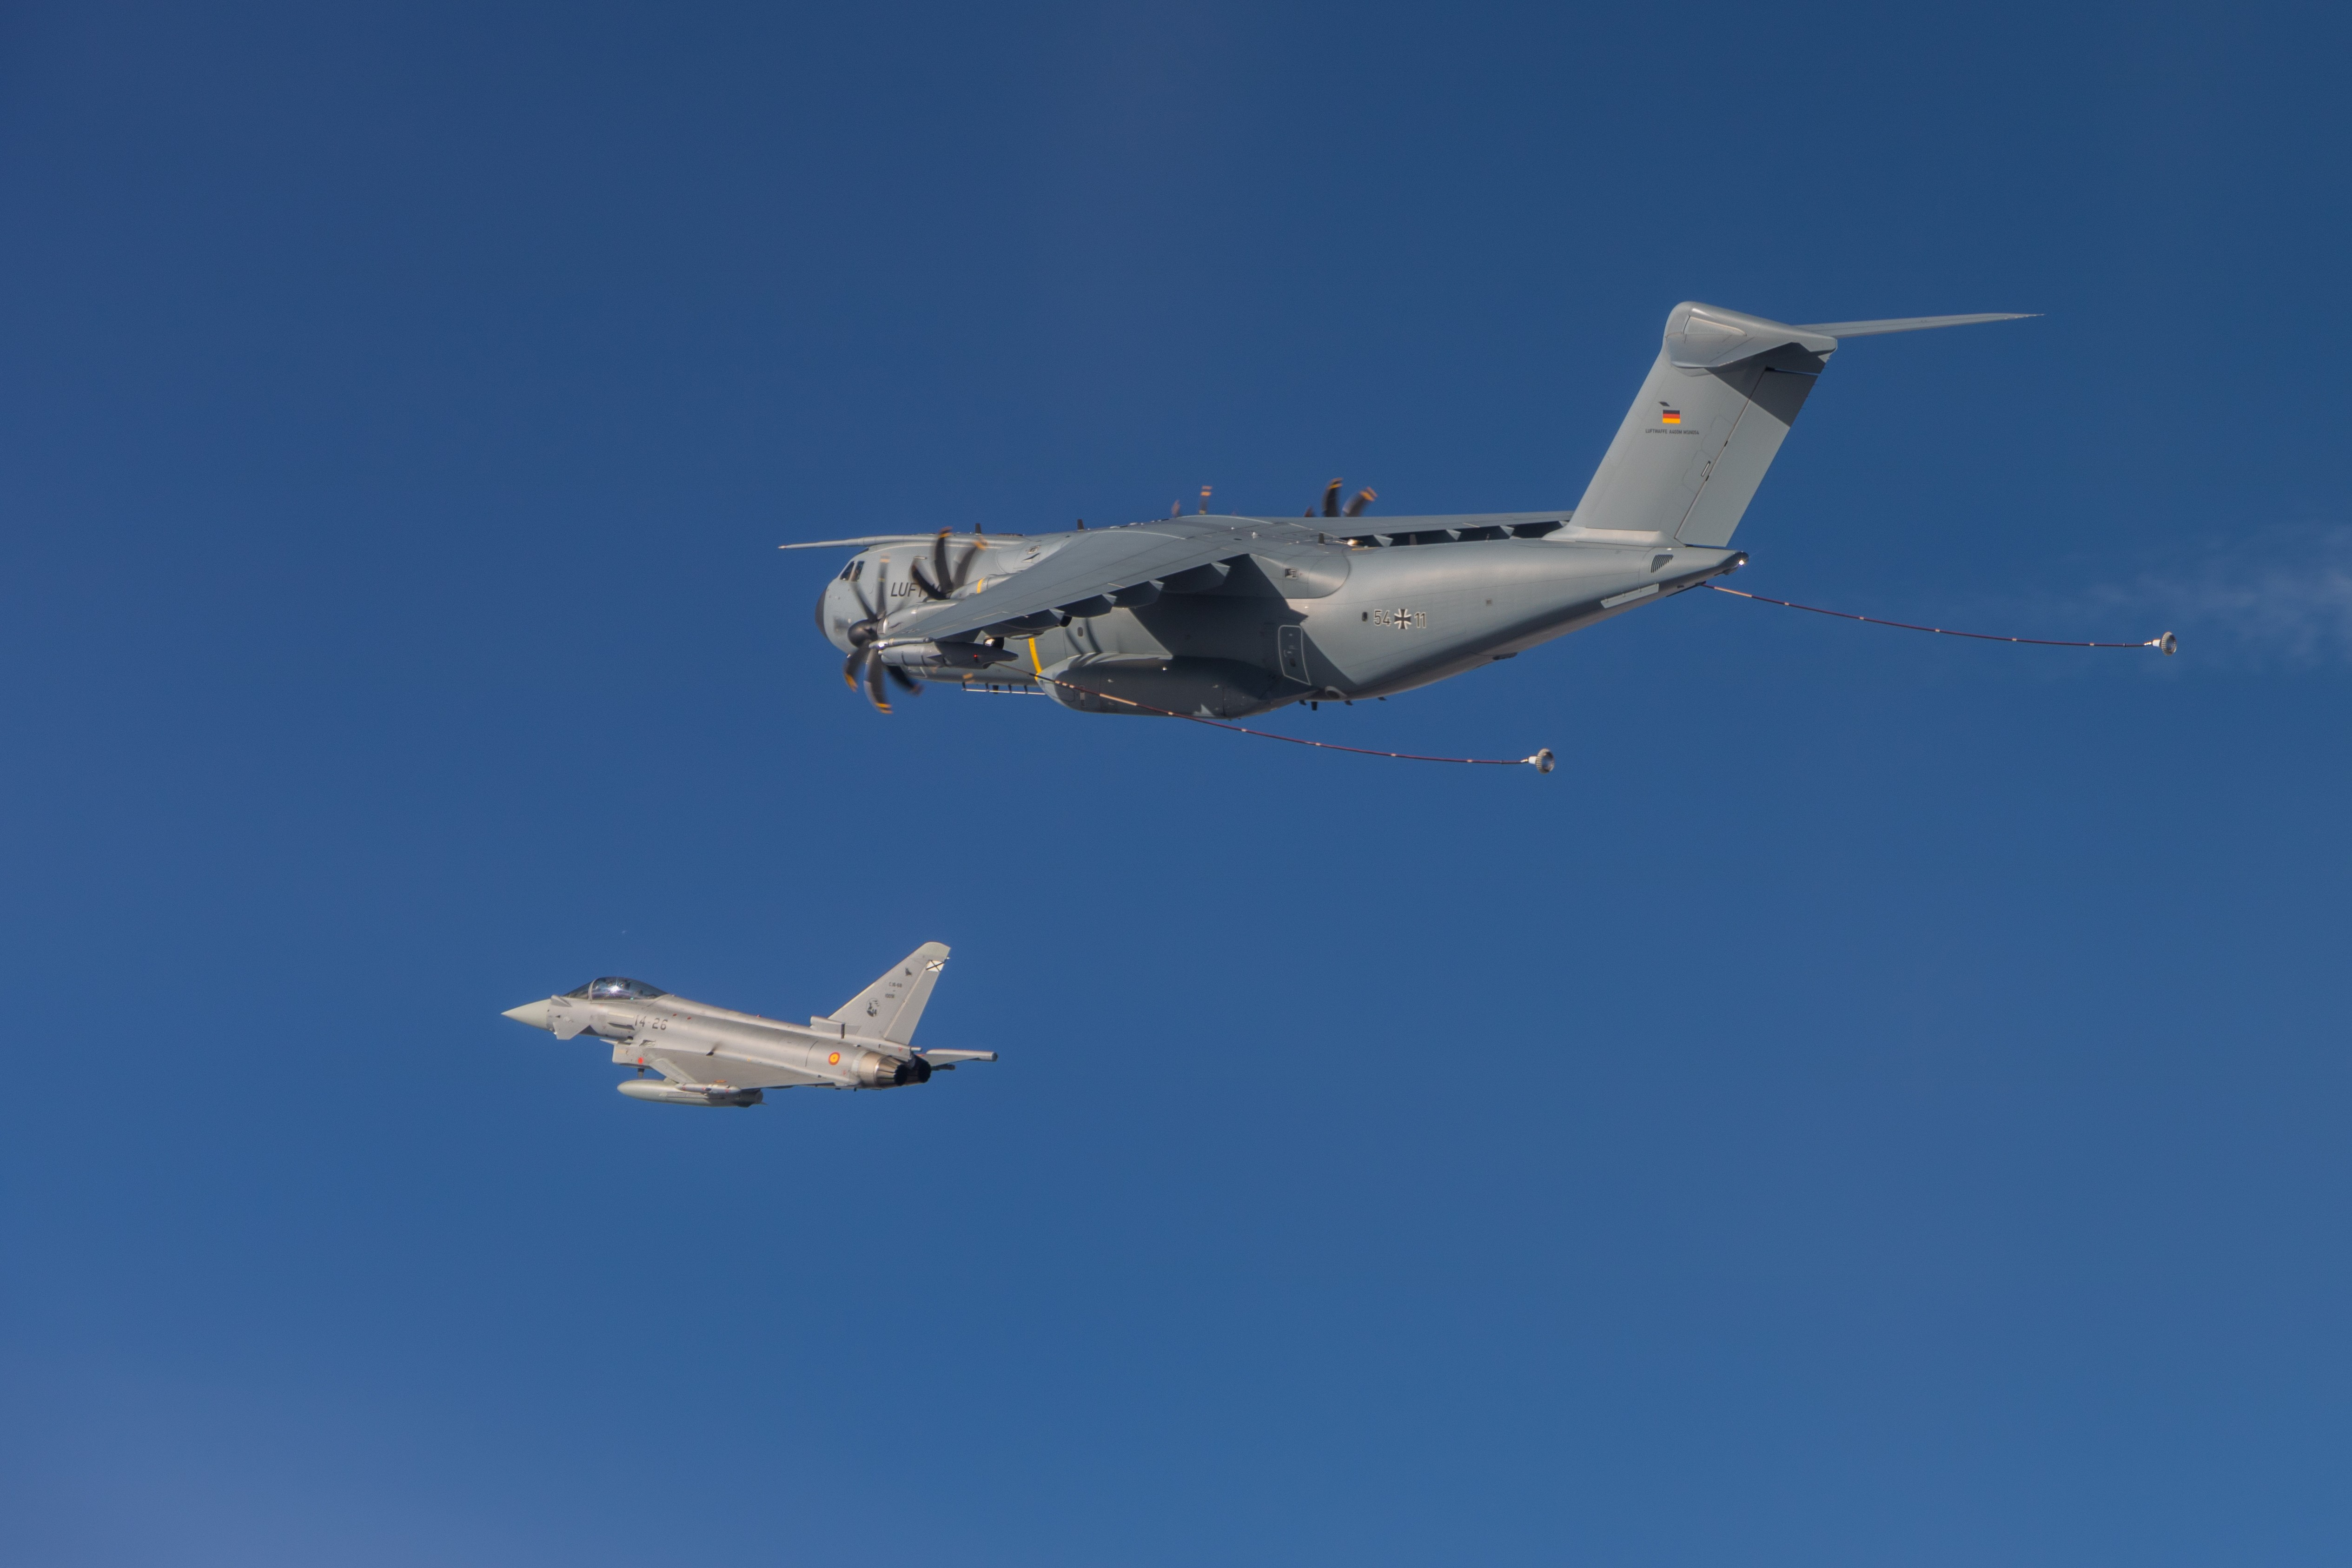 Don't miss the exclusive photos of Spanish and German A400Ms air-to-air refuelling Eurofighters!